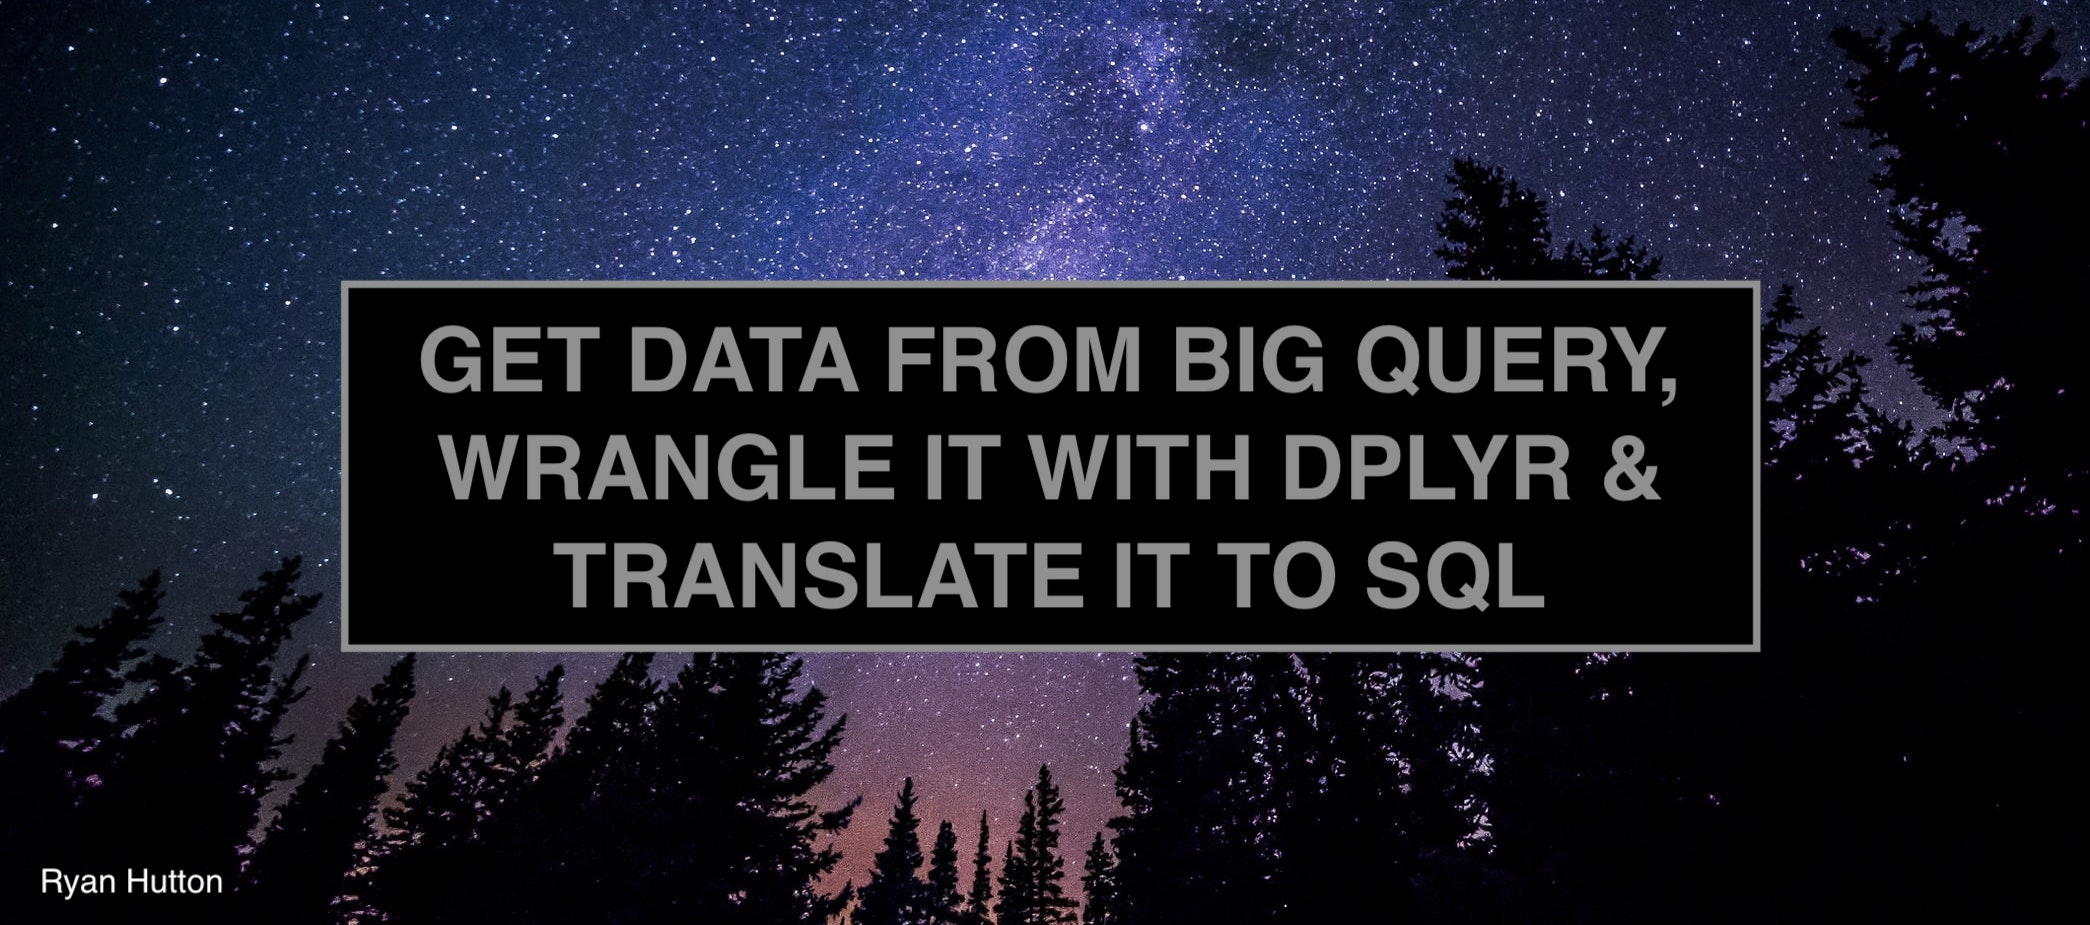 Connect to Big Query through dbConnect & translate dplyr to SQL